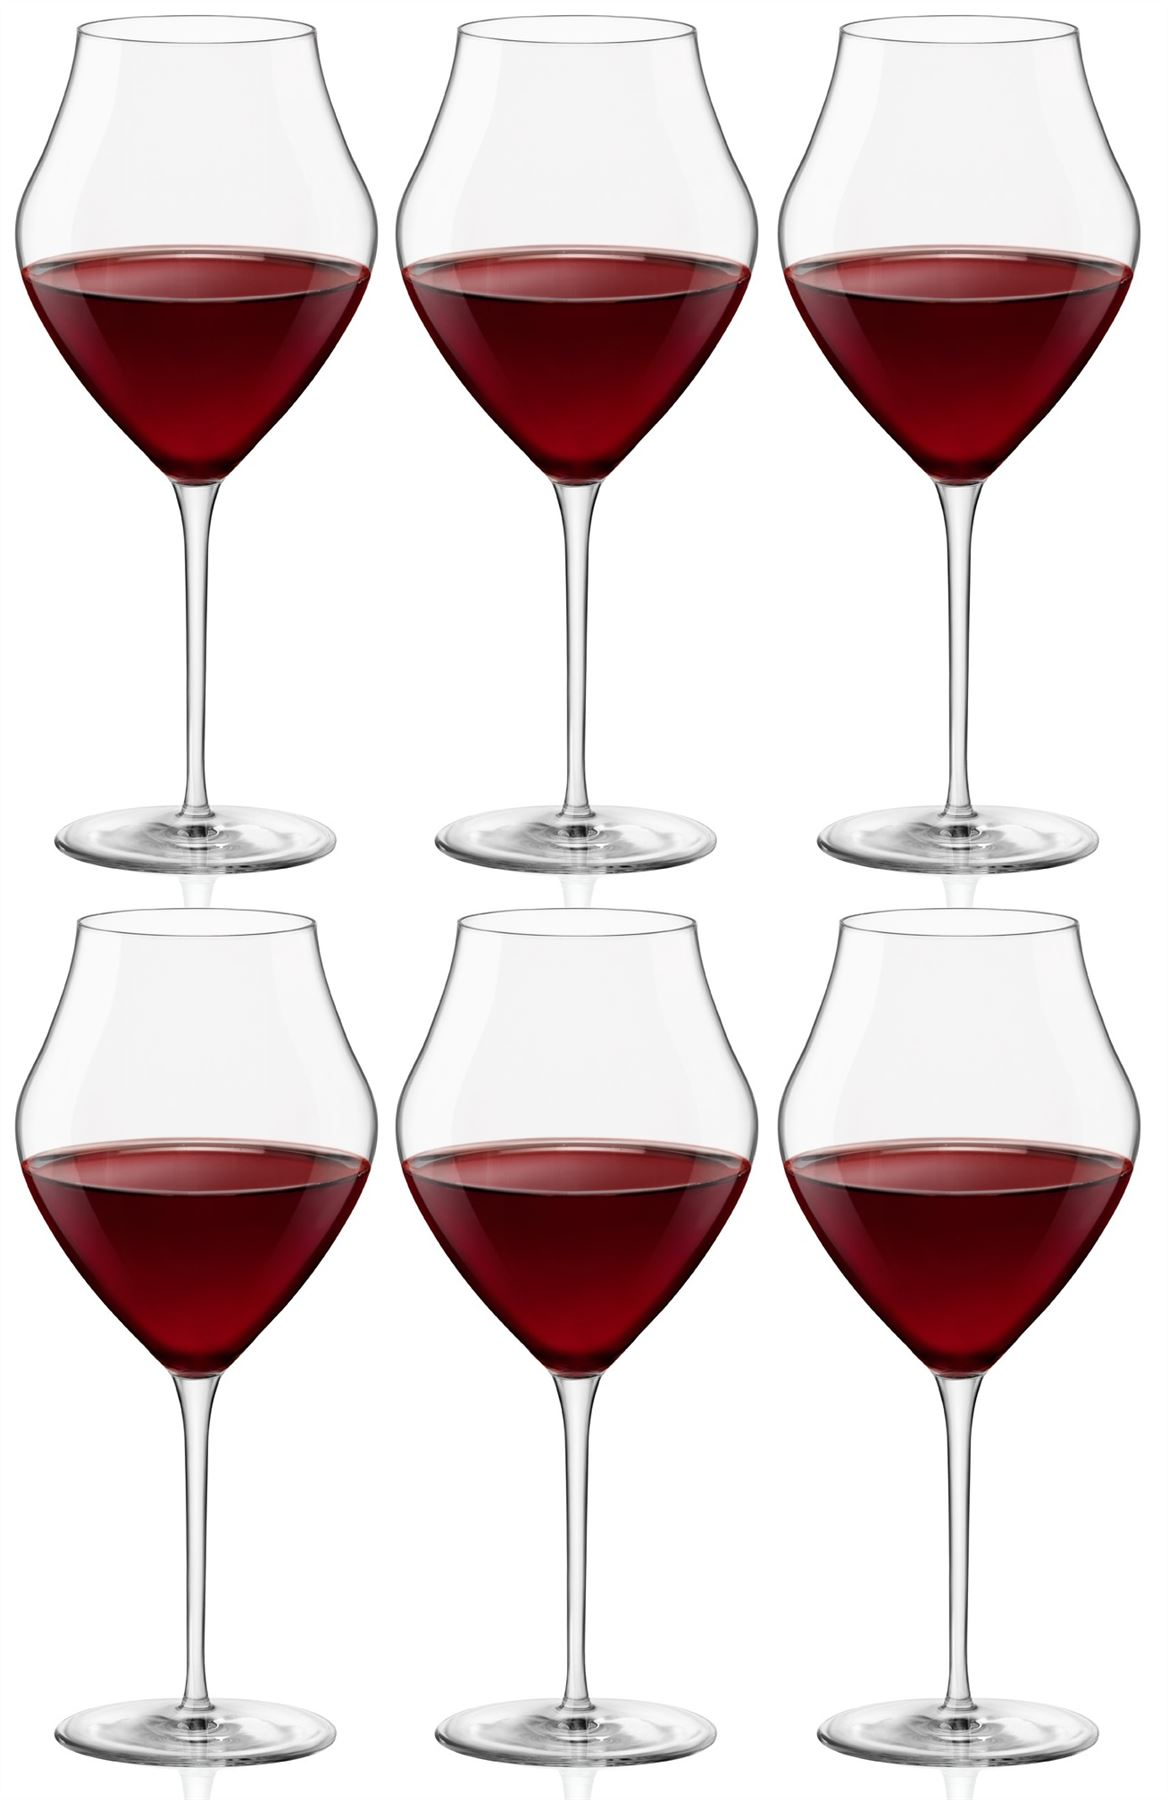 Big Red Wine Glasses Bormioli Rocco Arte Extra Large Red Wine Glasses Gift